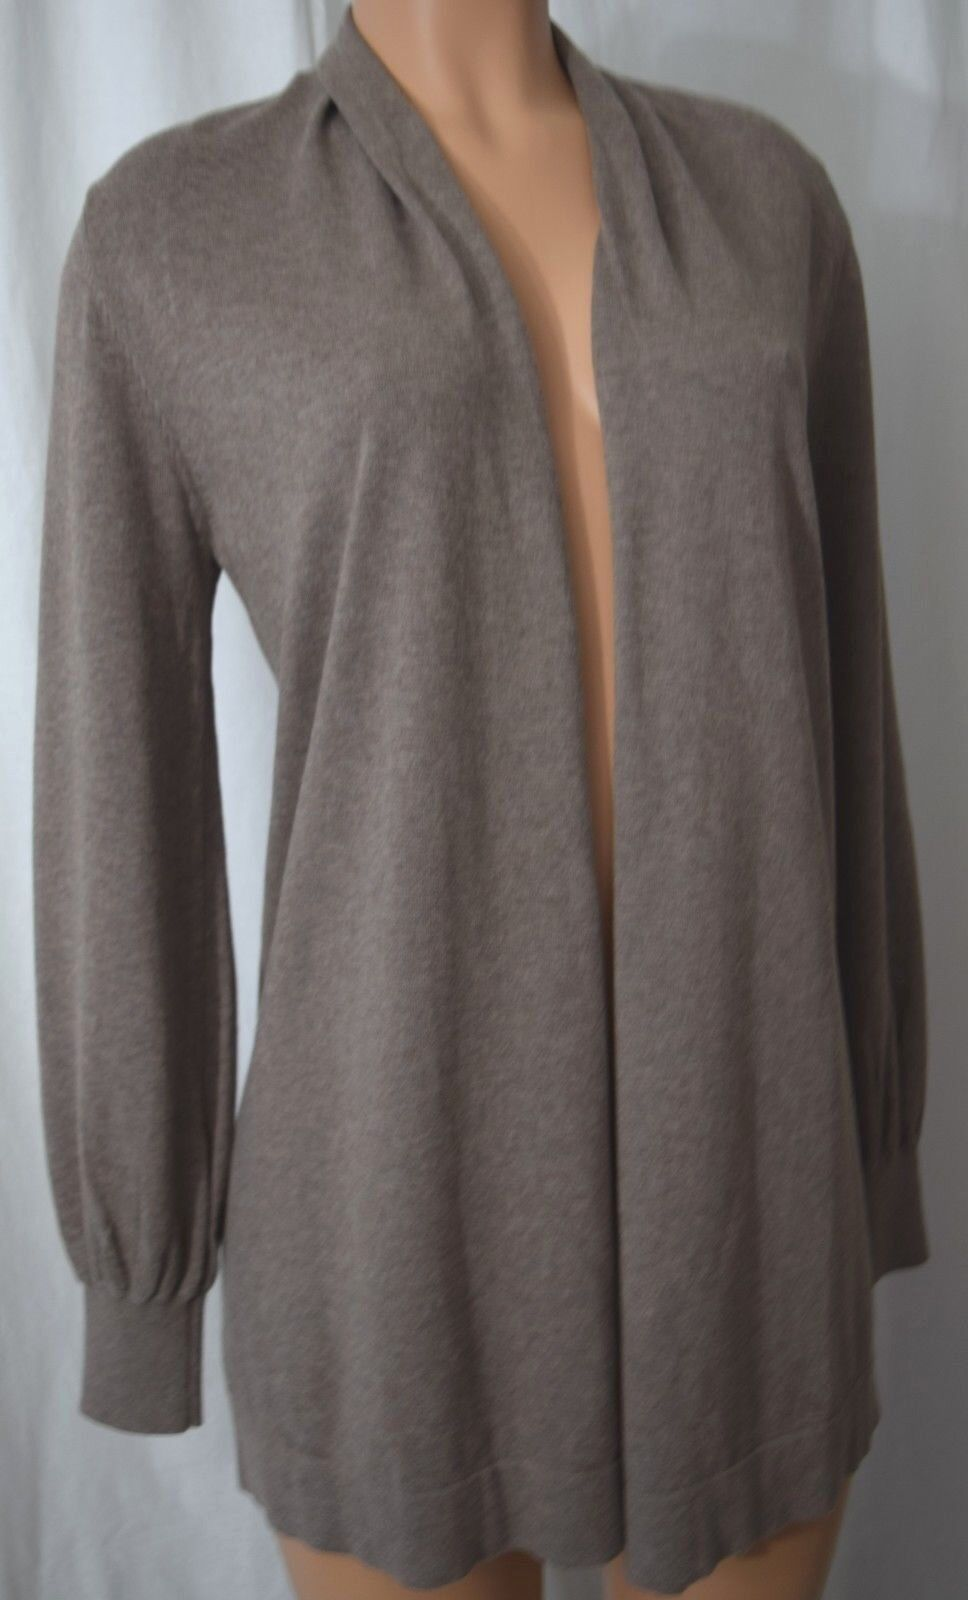 REPEAT Cotton Viscose Brown Knitted Cardigan Size 38